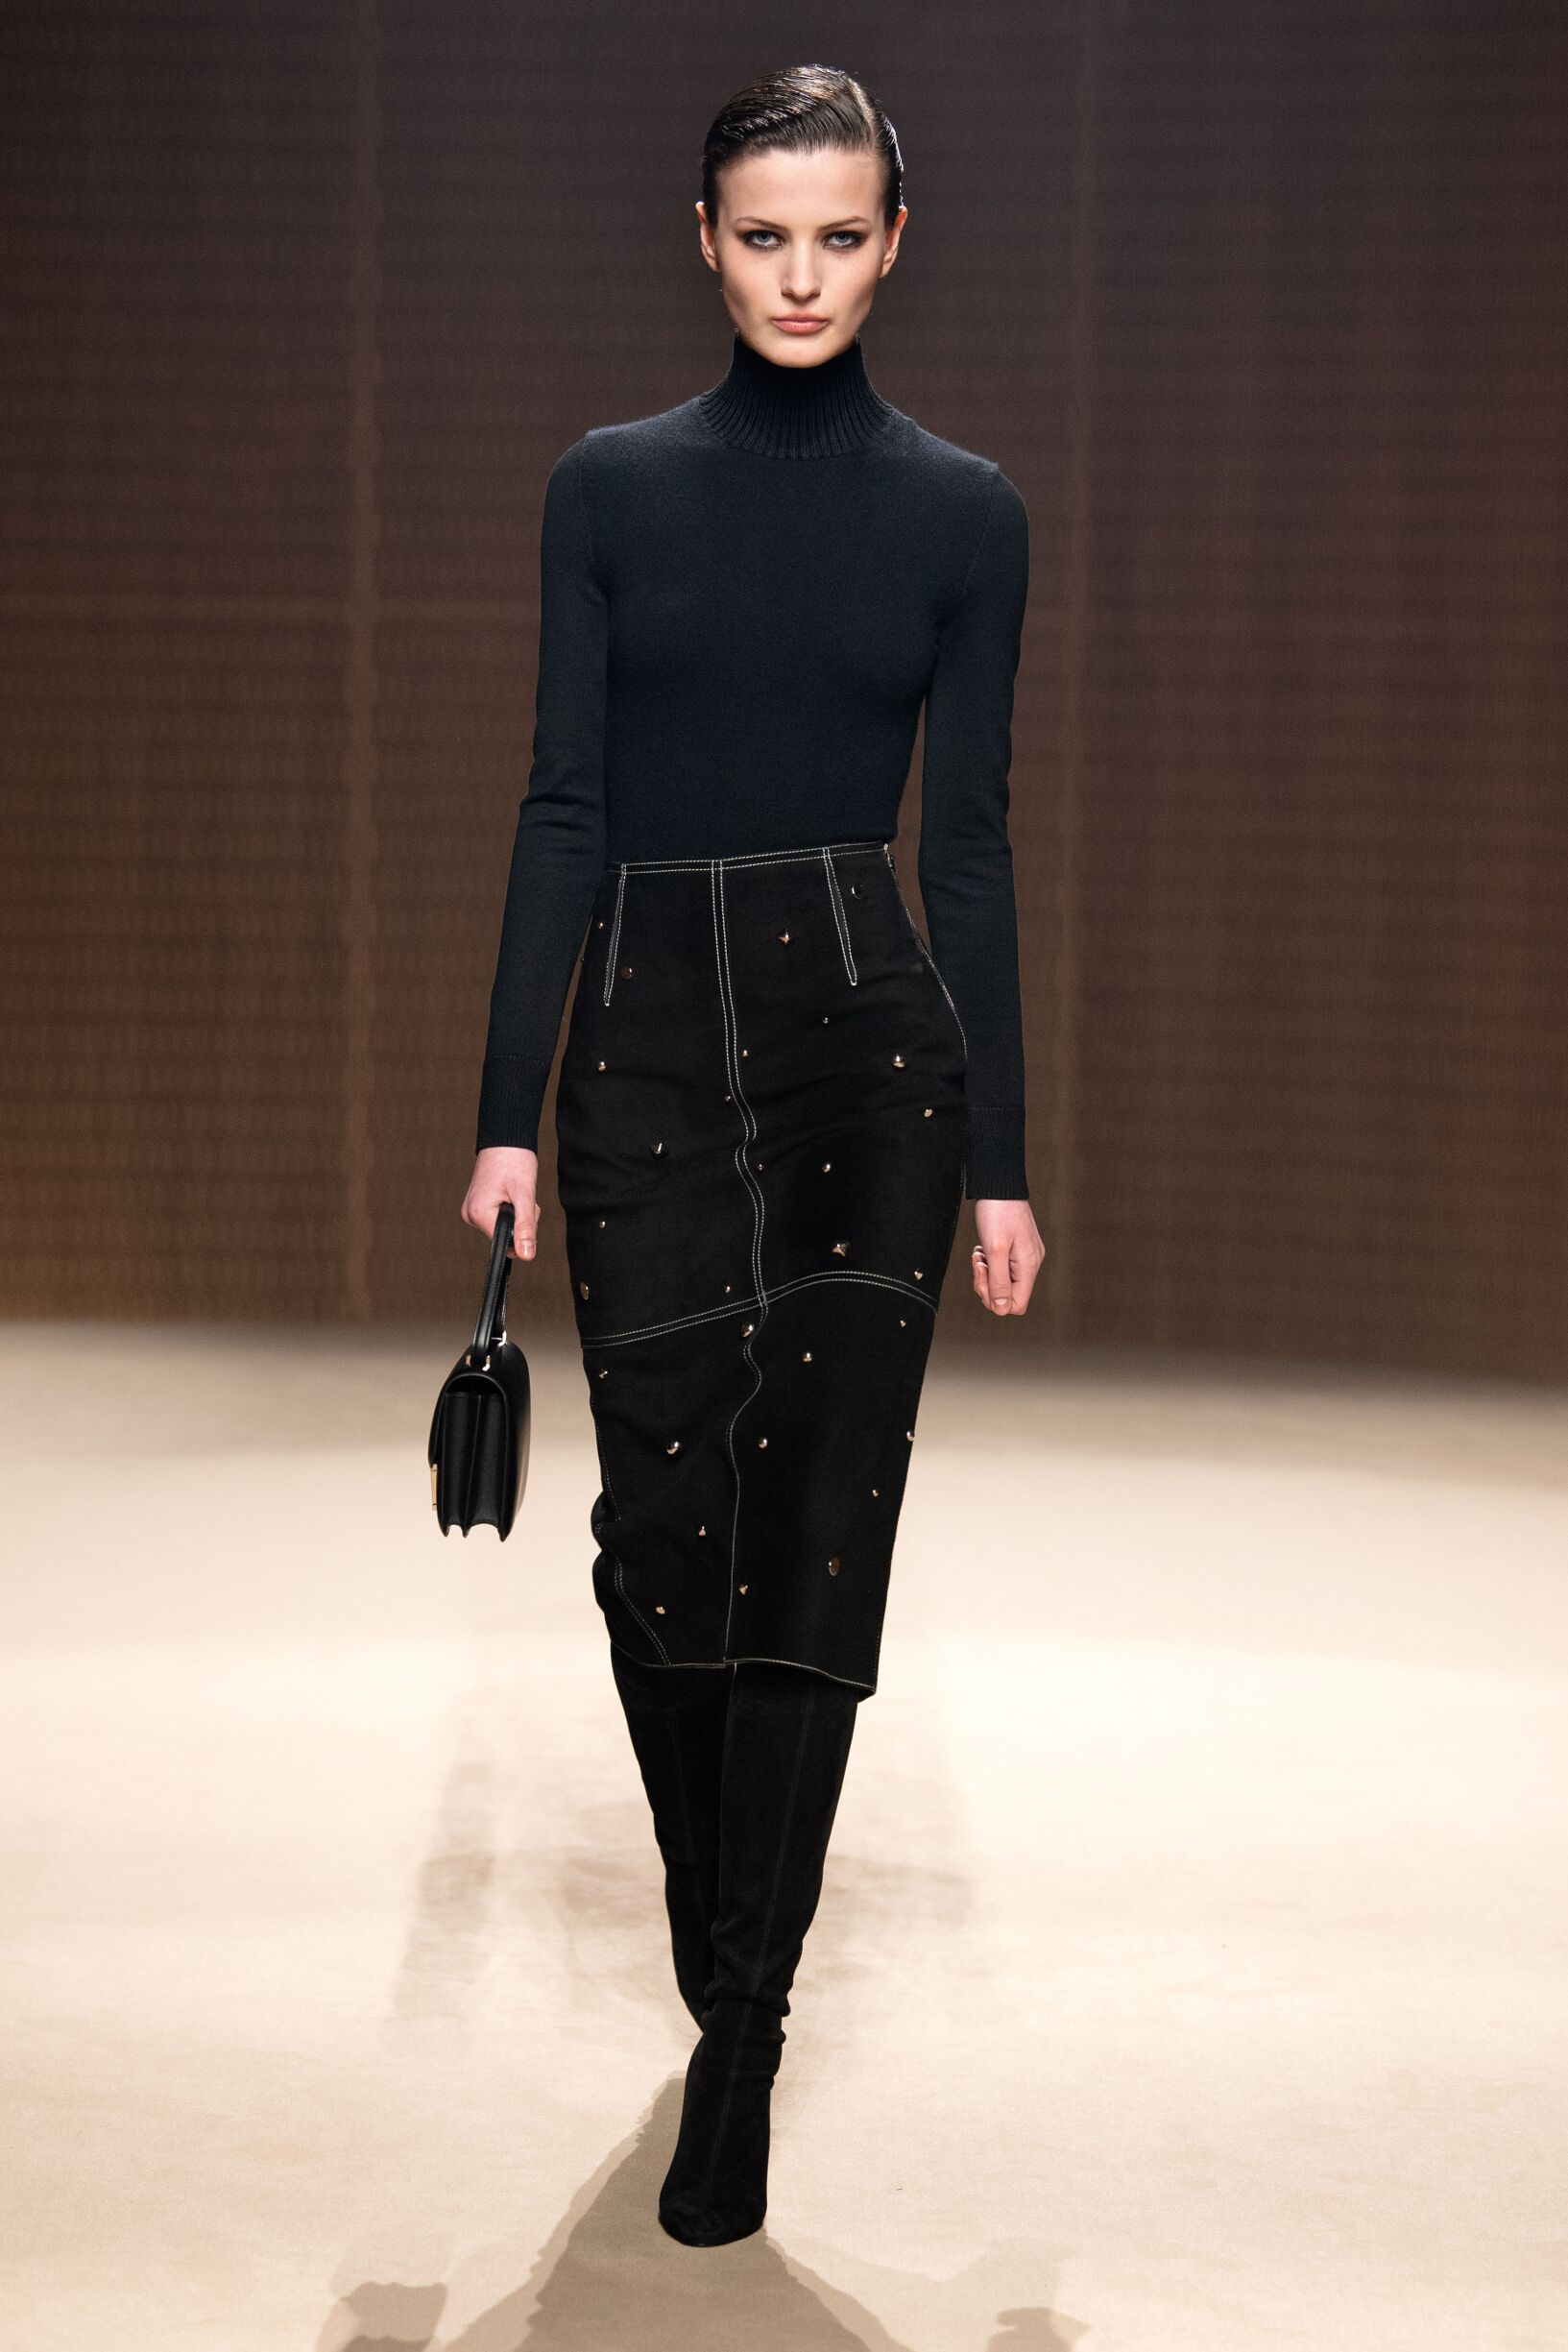 FW 2019-20 Hermès Fashion Show